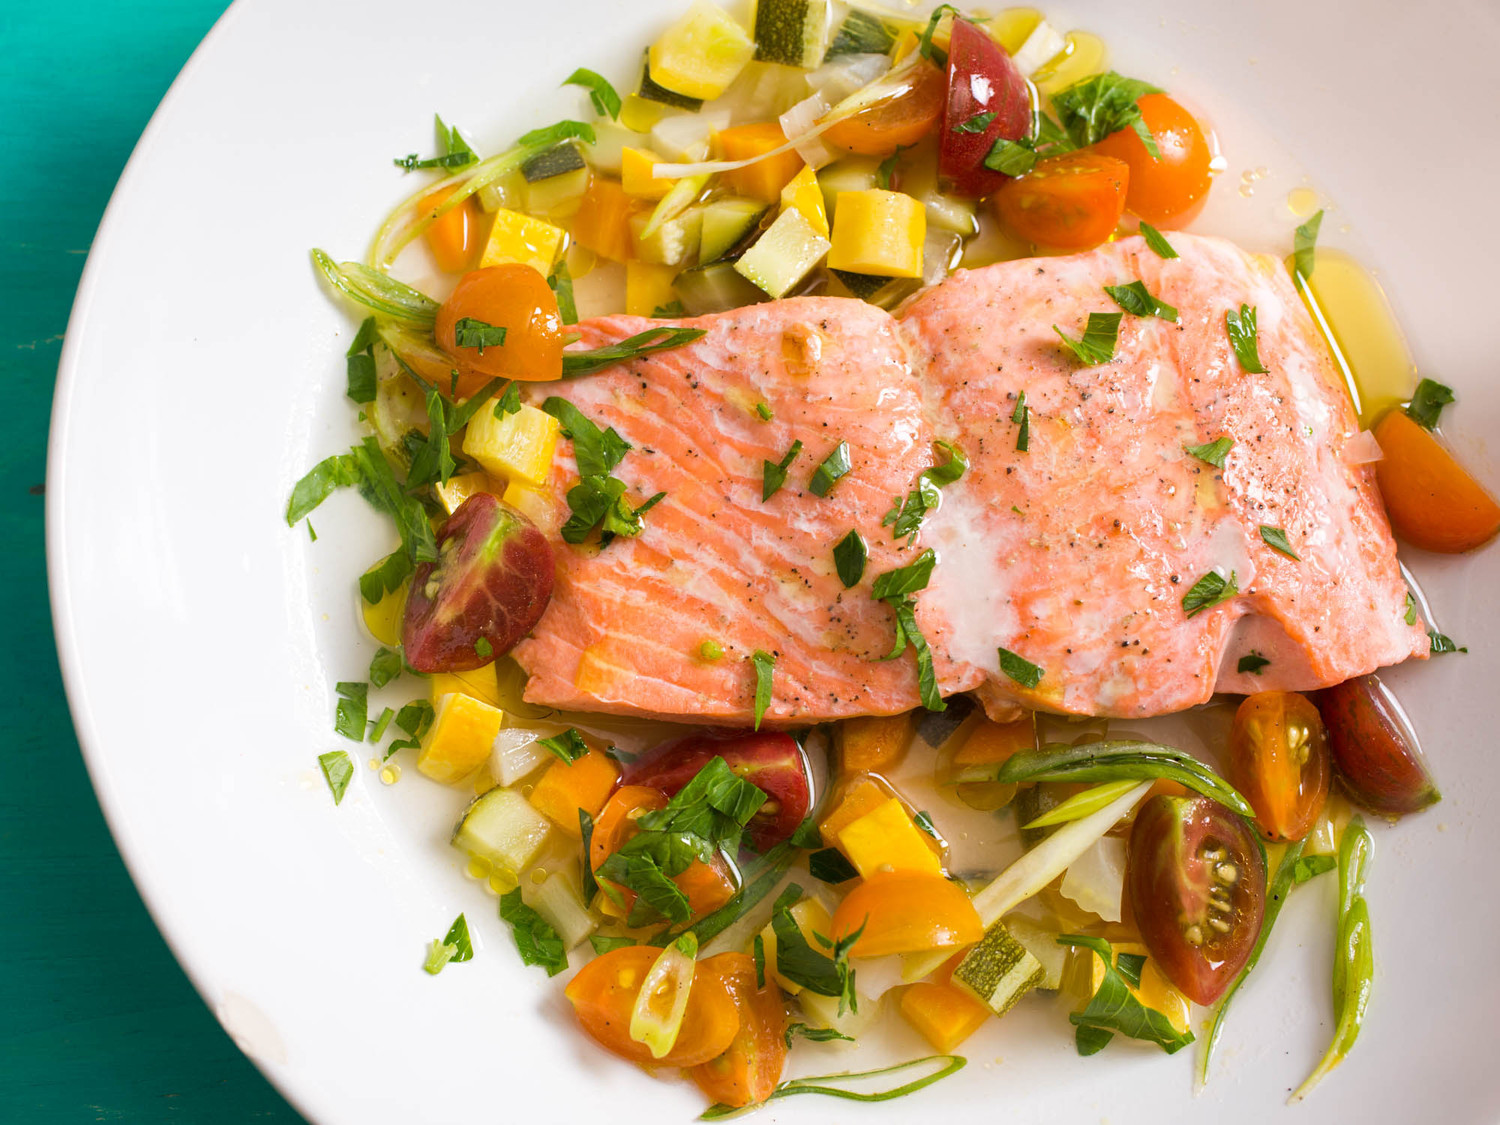 Summer Fish Recipes  22 Speedy Seafood Recipes for Hectic Weeknights